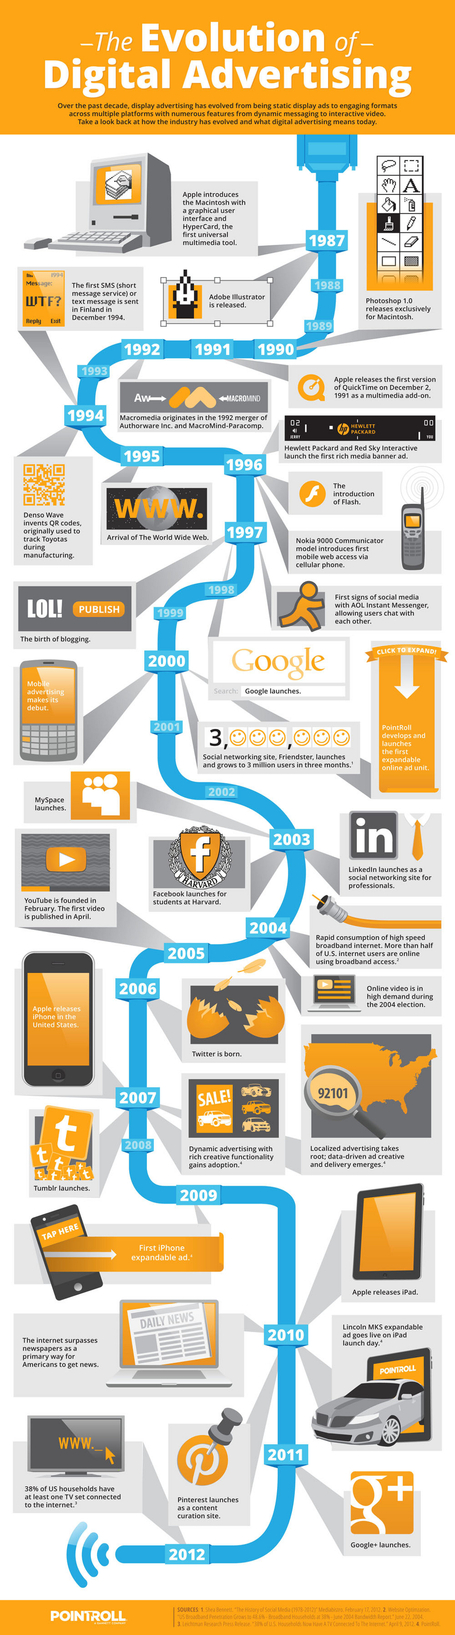 The Evolution of Digital Advertising [INFOGRAPHIC] | Digital Marketing Buzz | Scoop.it